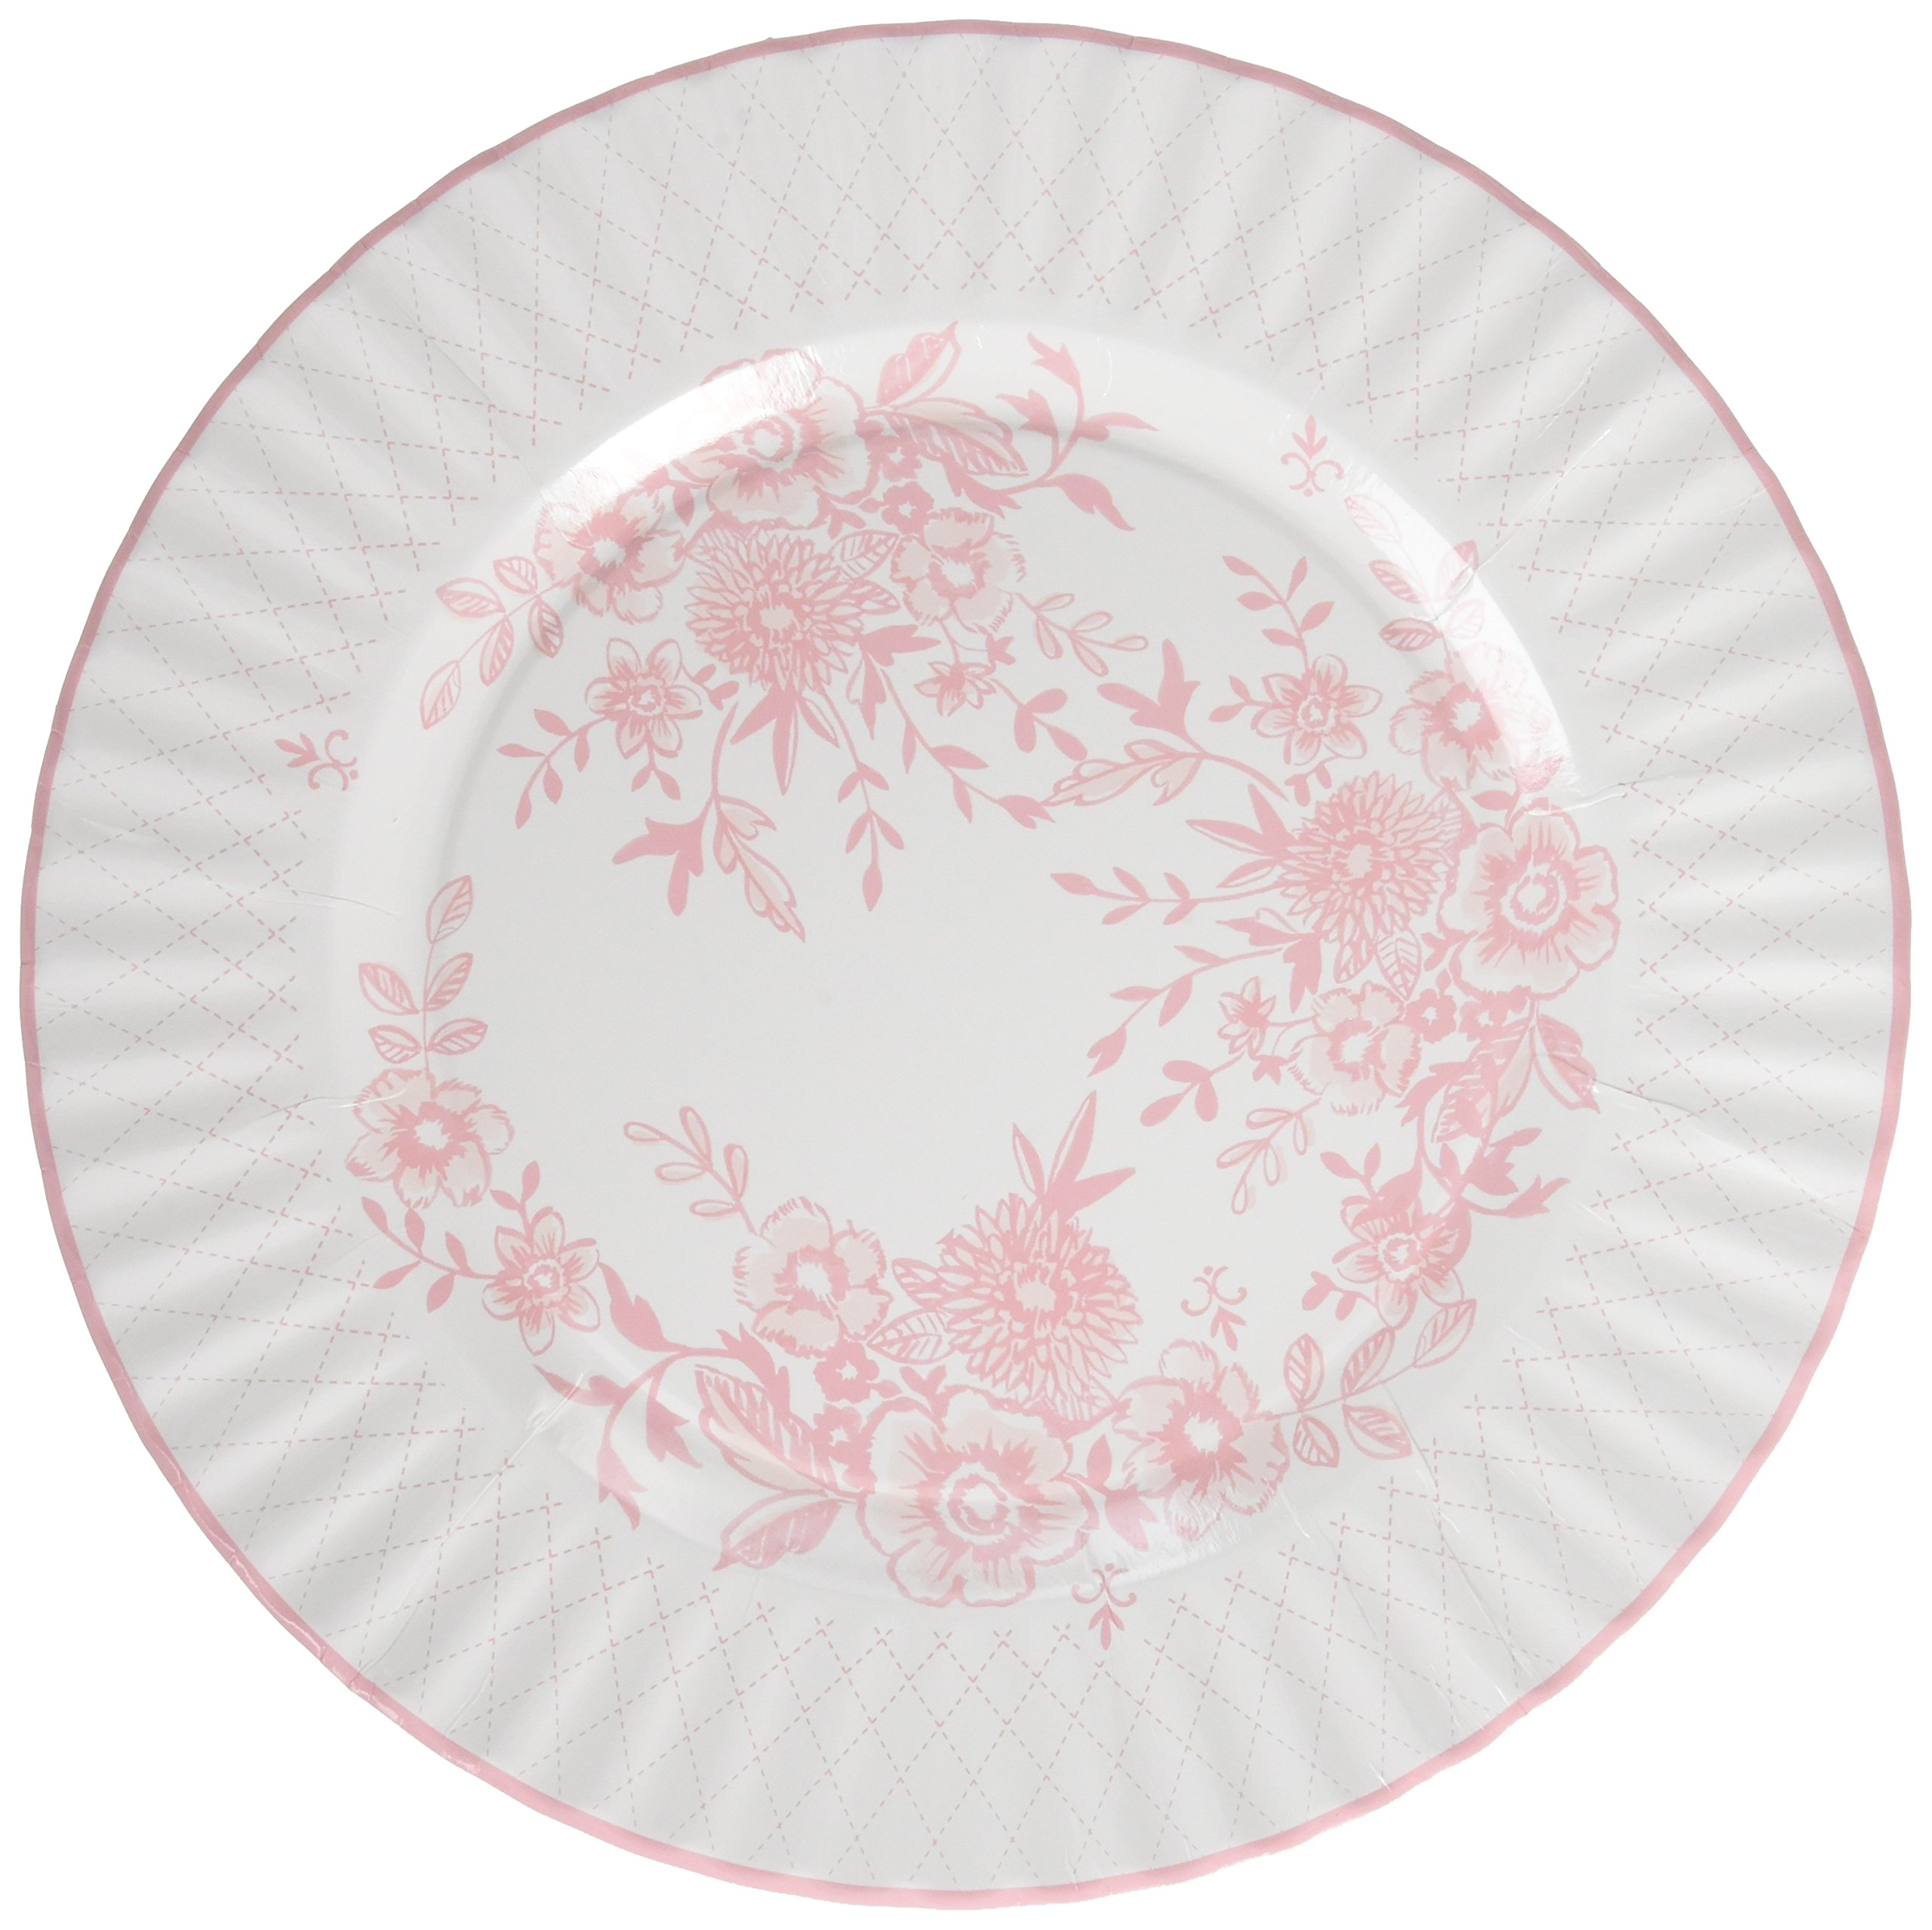 Talking Tables Party Porcelain Rose Large 11 inch Floral Disposable Plates, 8 count,  for a Tea Party or Get Together, Pink/White